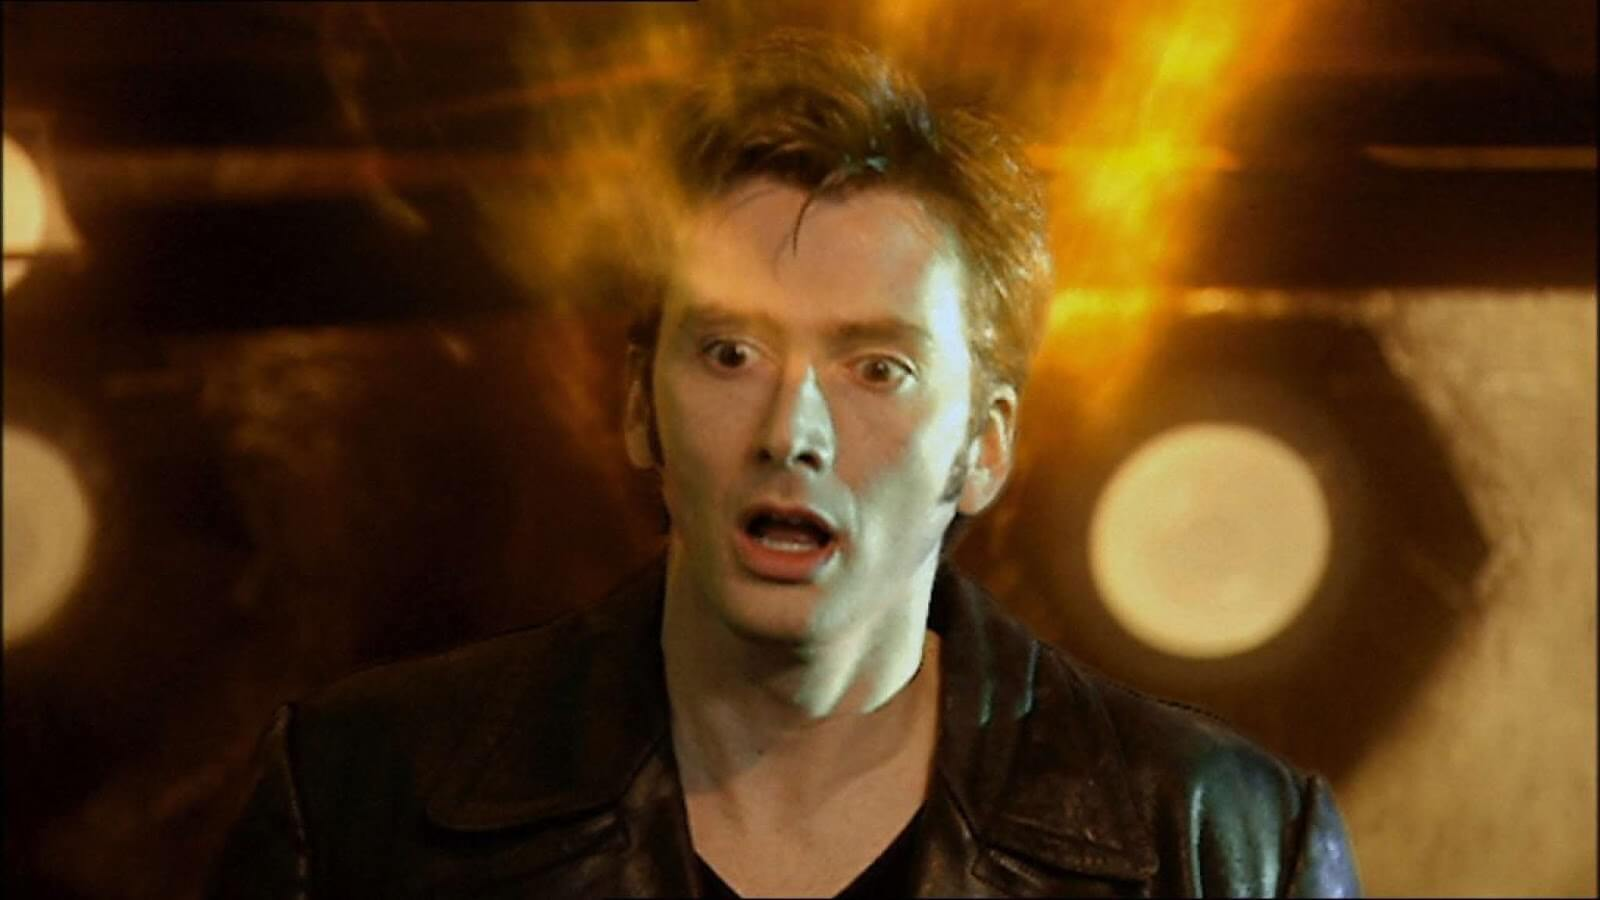 David Tennant makes his first appearance in Doctor Who - The Parting Of The Ways (BBC1, 2005).